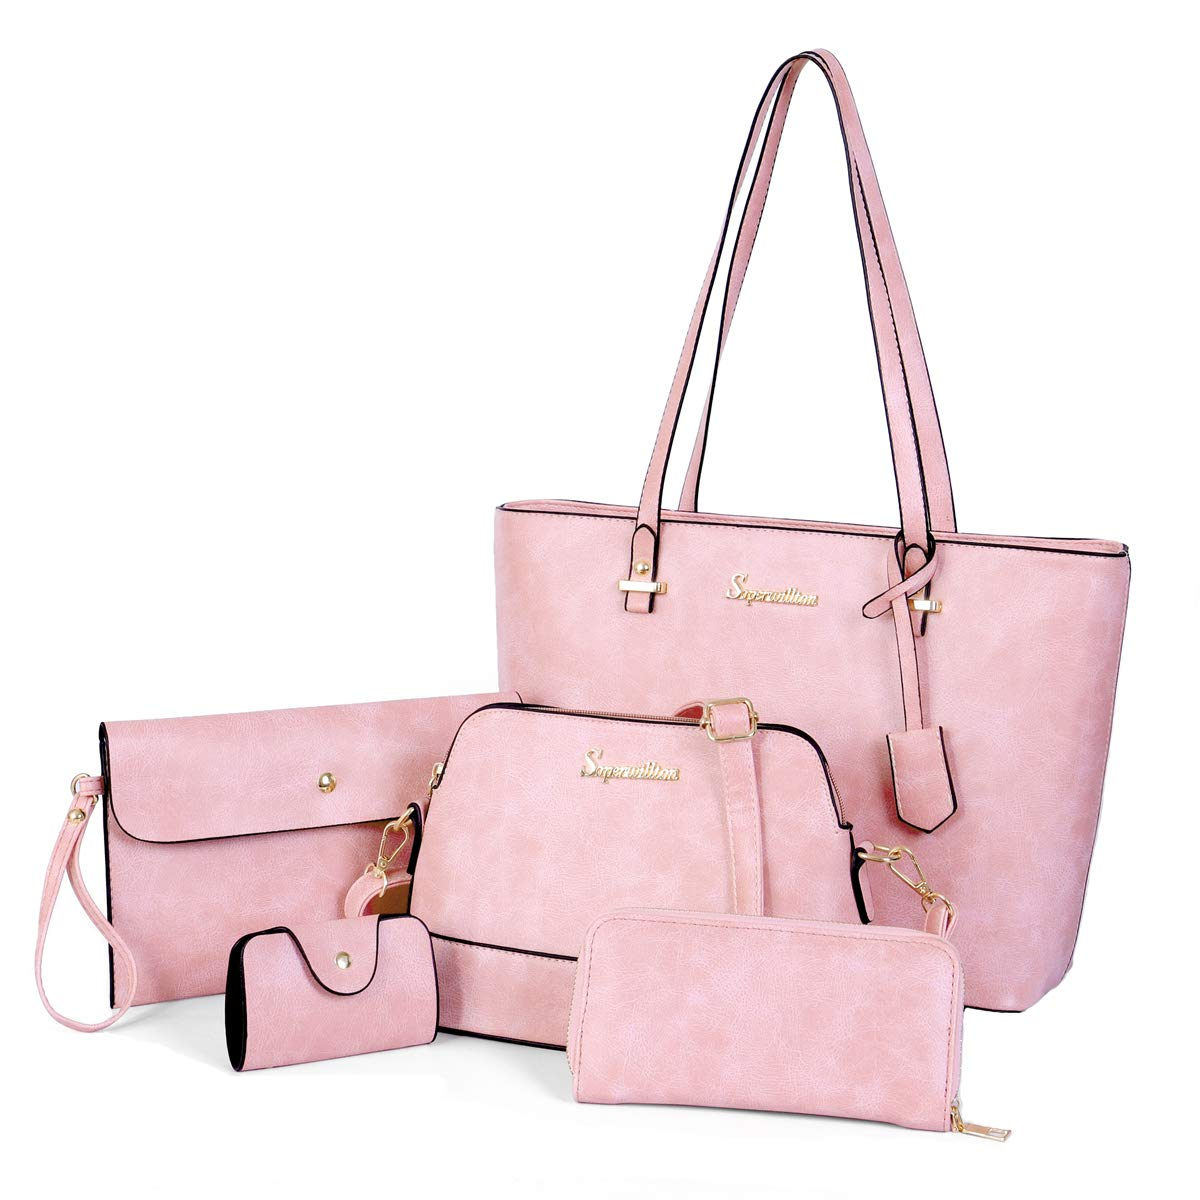 Soperwillton Handbag Set for Women Tote Purse and Handbags Satchel Shoulder Bag 5pcs Purse Set